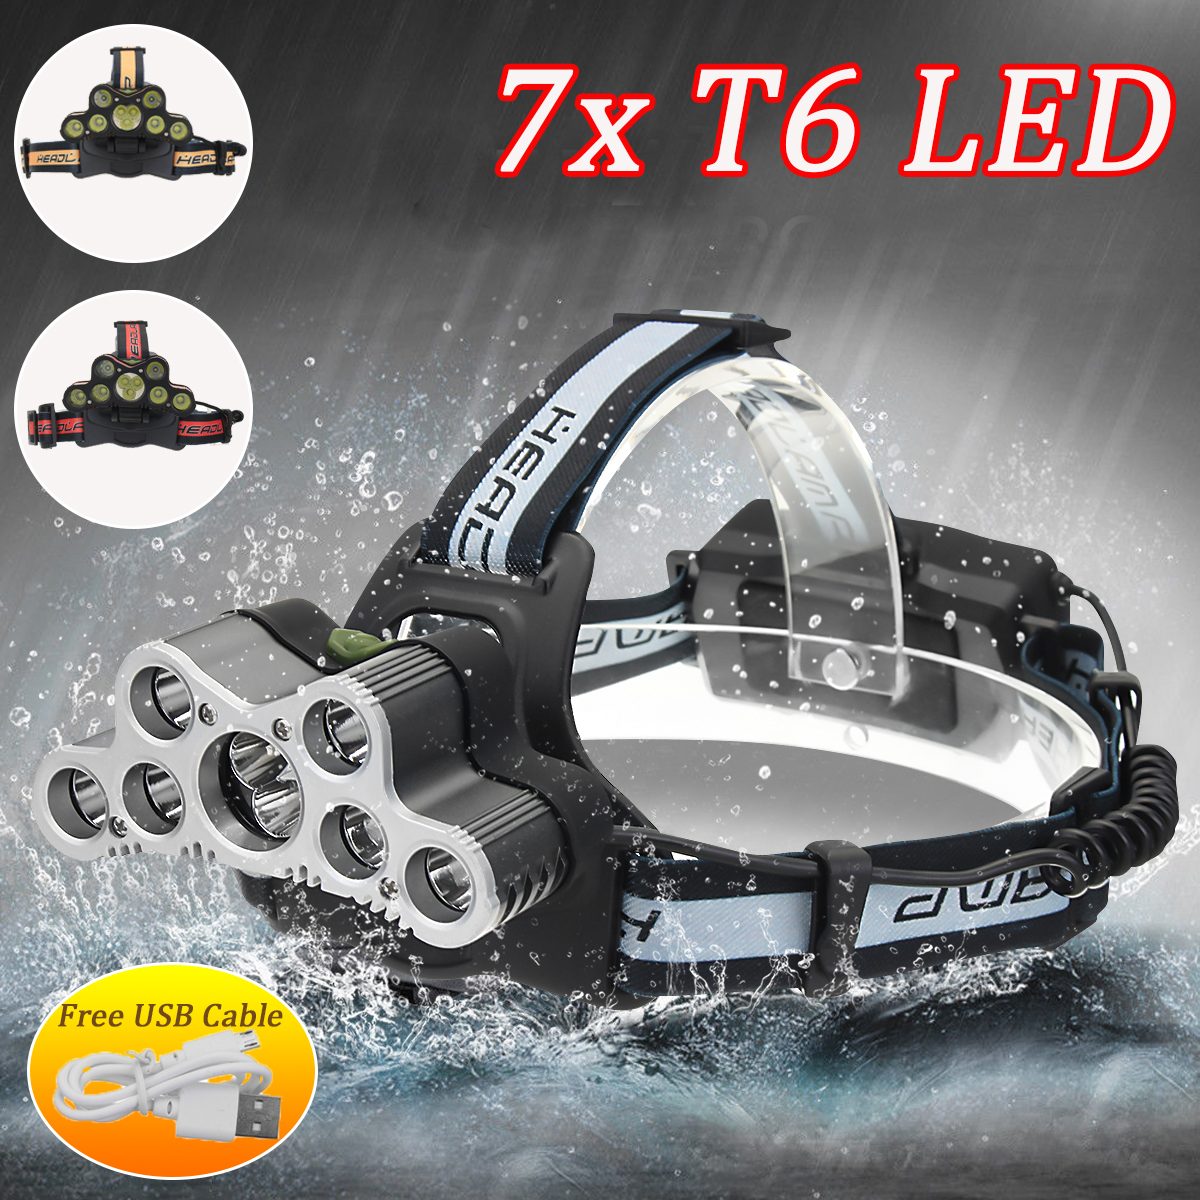 Elfeland 5000Lumens 7xT6 LED USB Rechargeable Headlight Headlamp Torch Waterproof with SOS Help Whistle 6 Modes For Camping Hiking